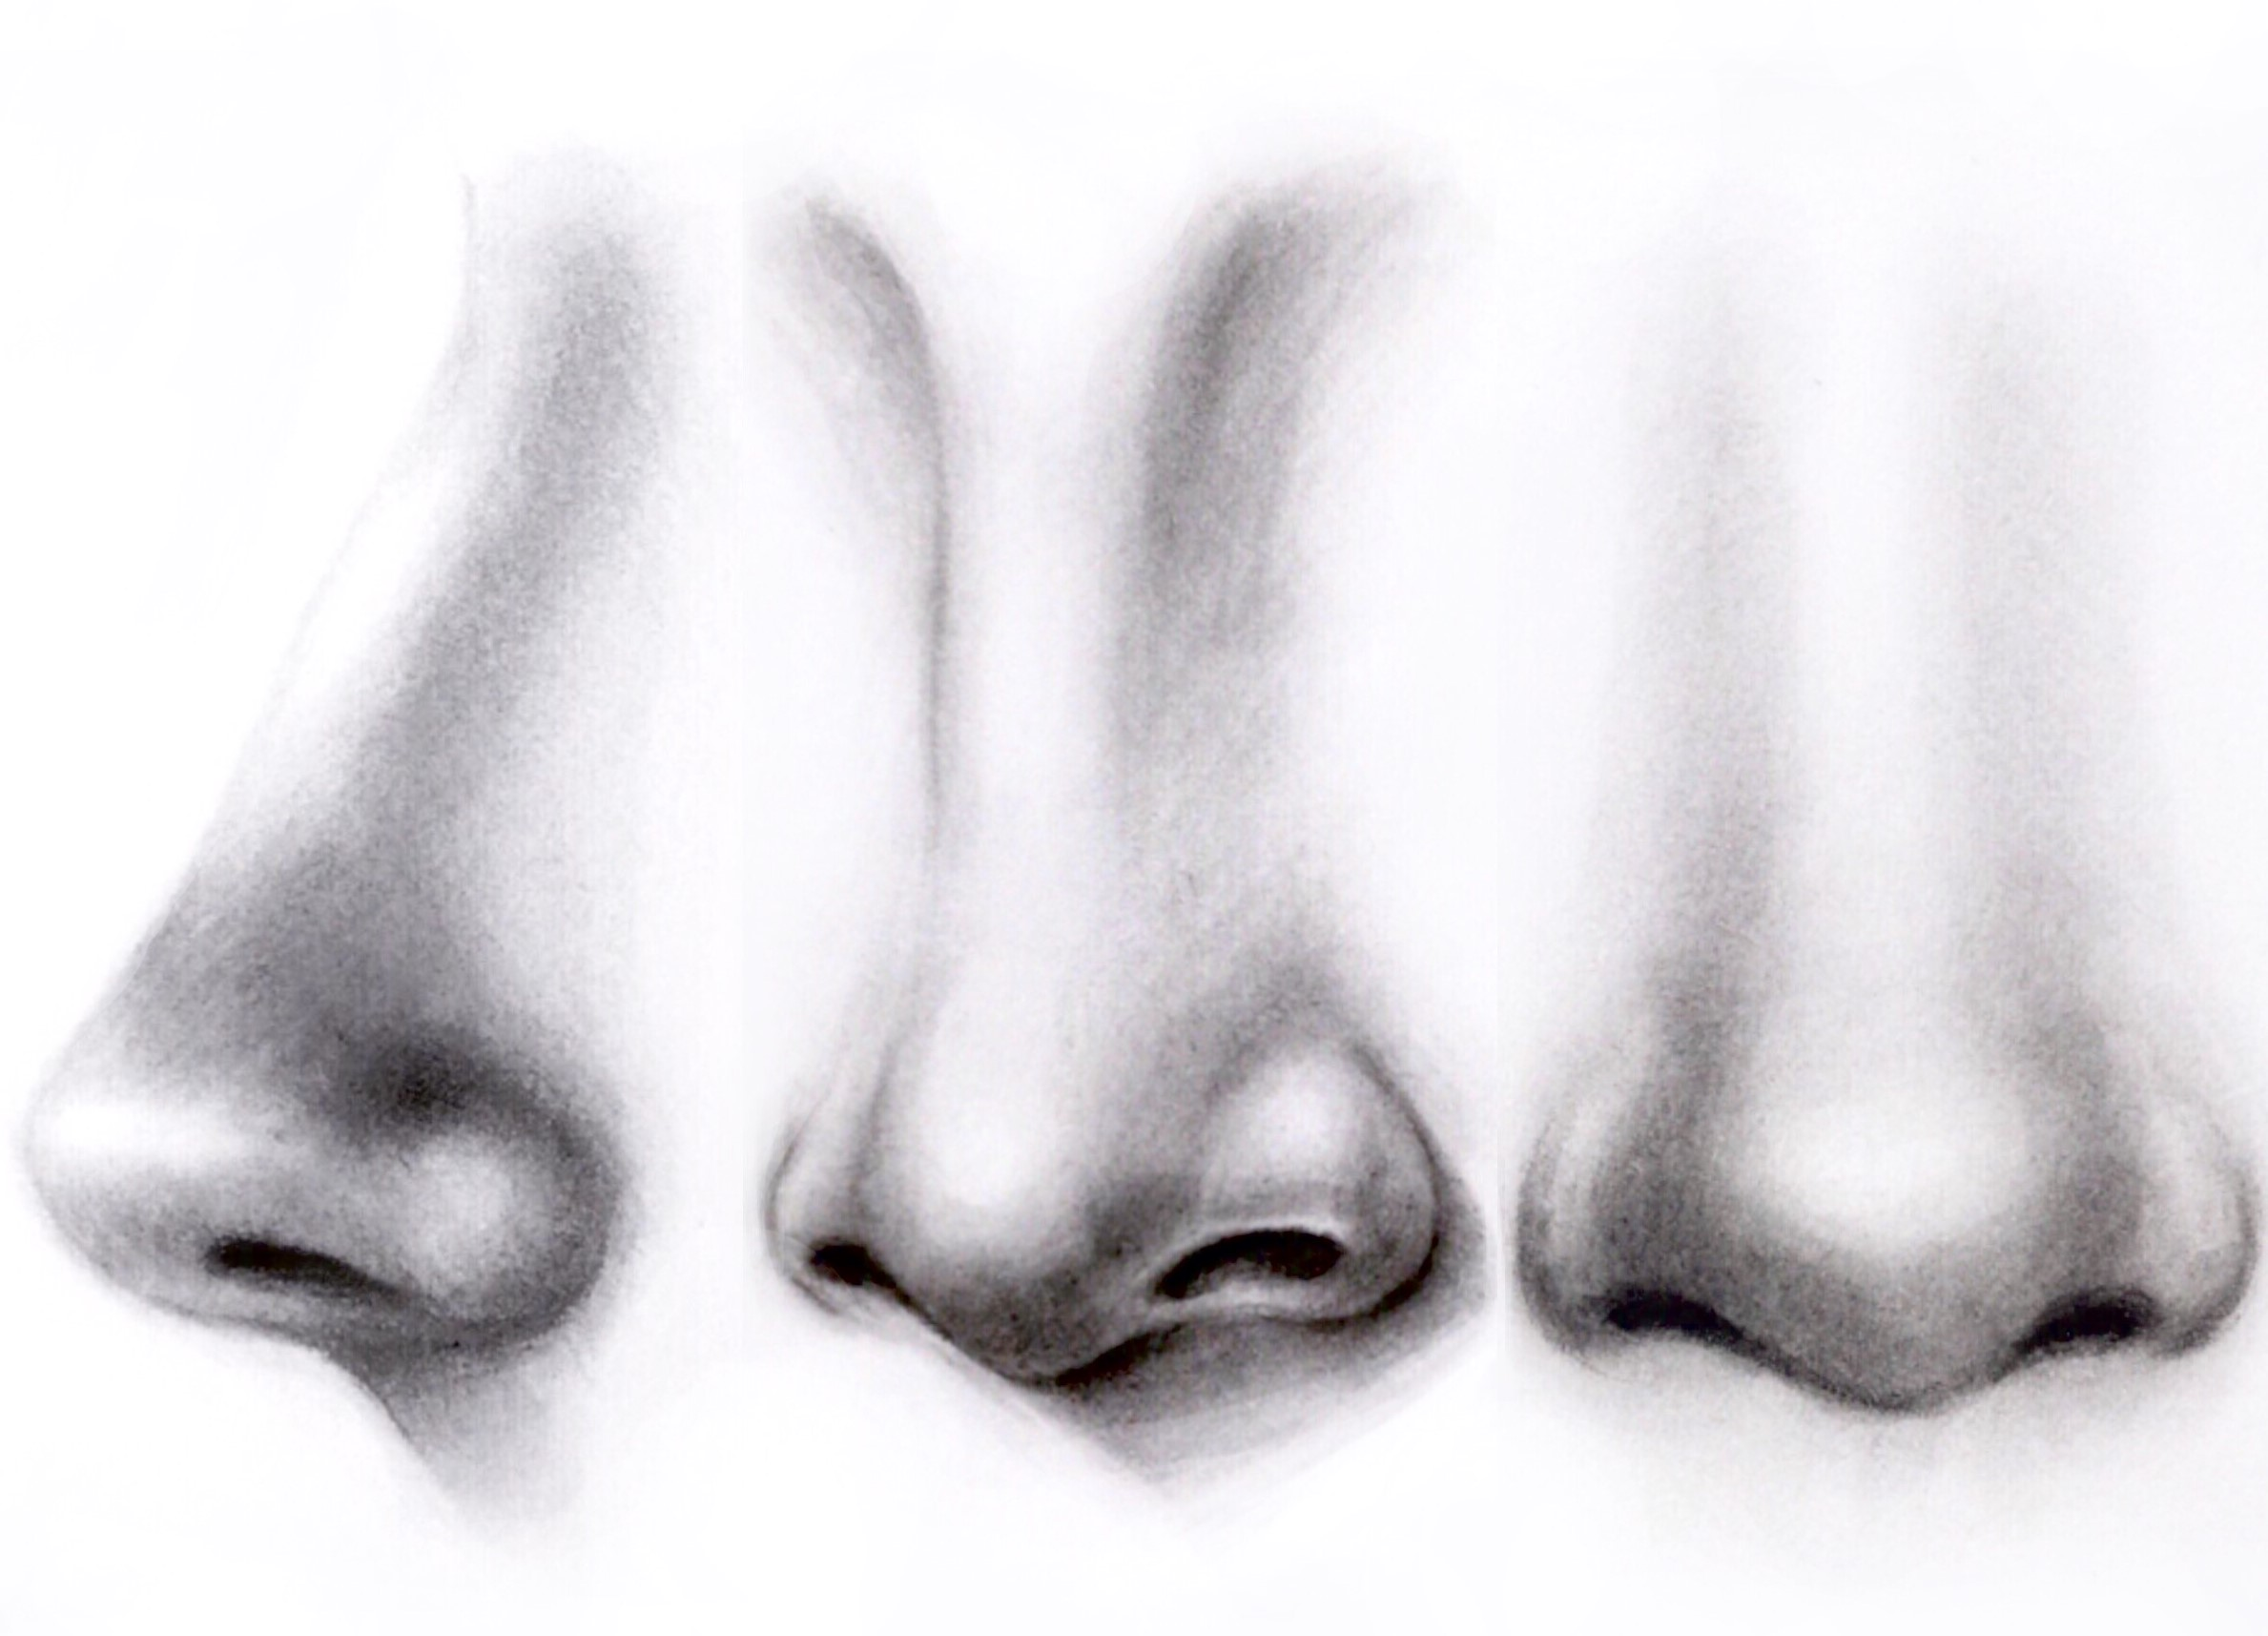 03 Mar How To Draw A Nose '�  Step By Step